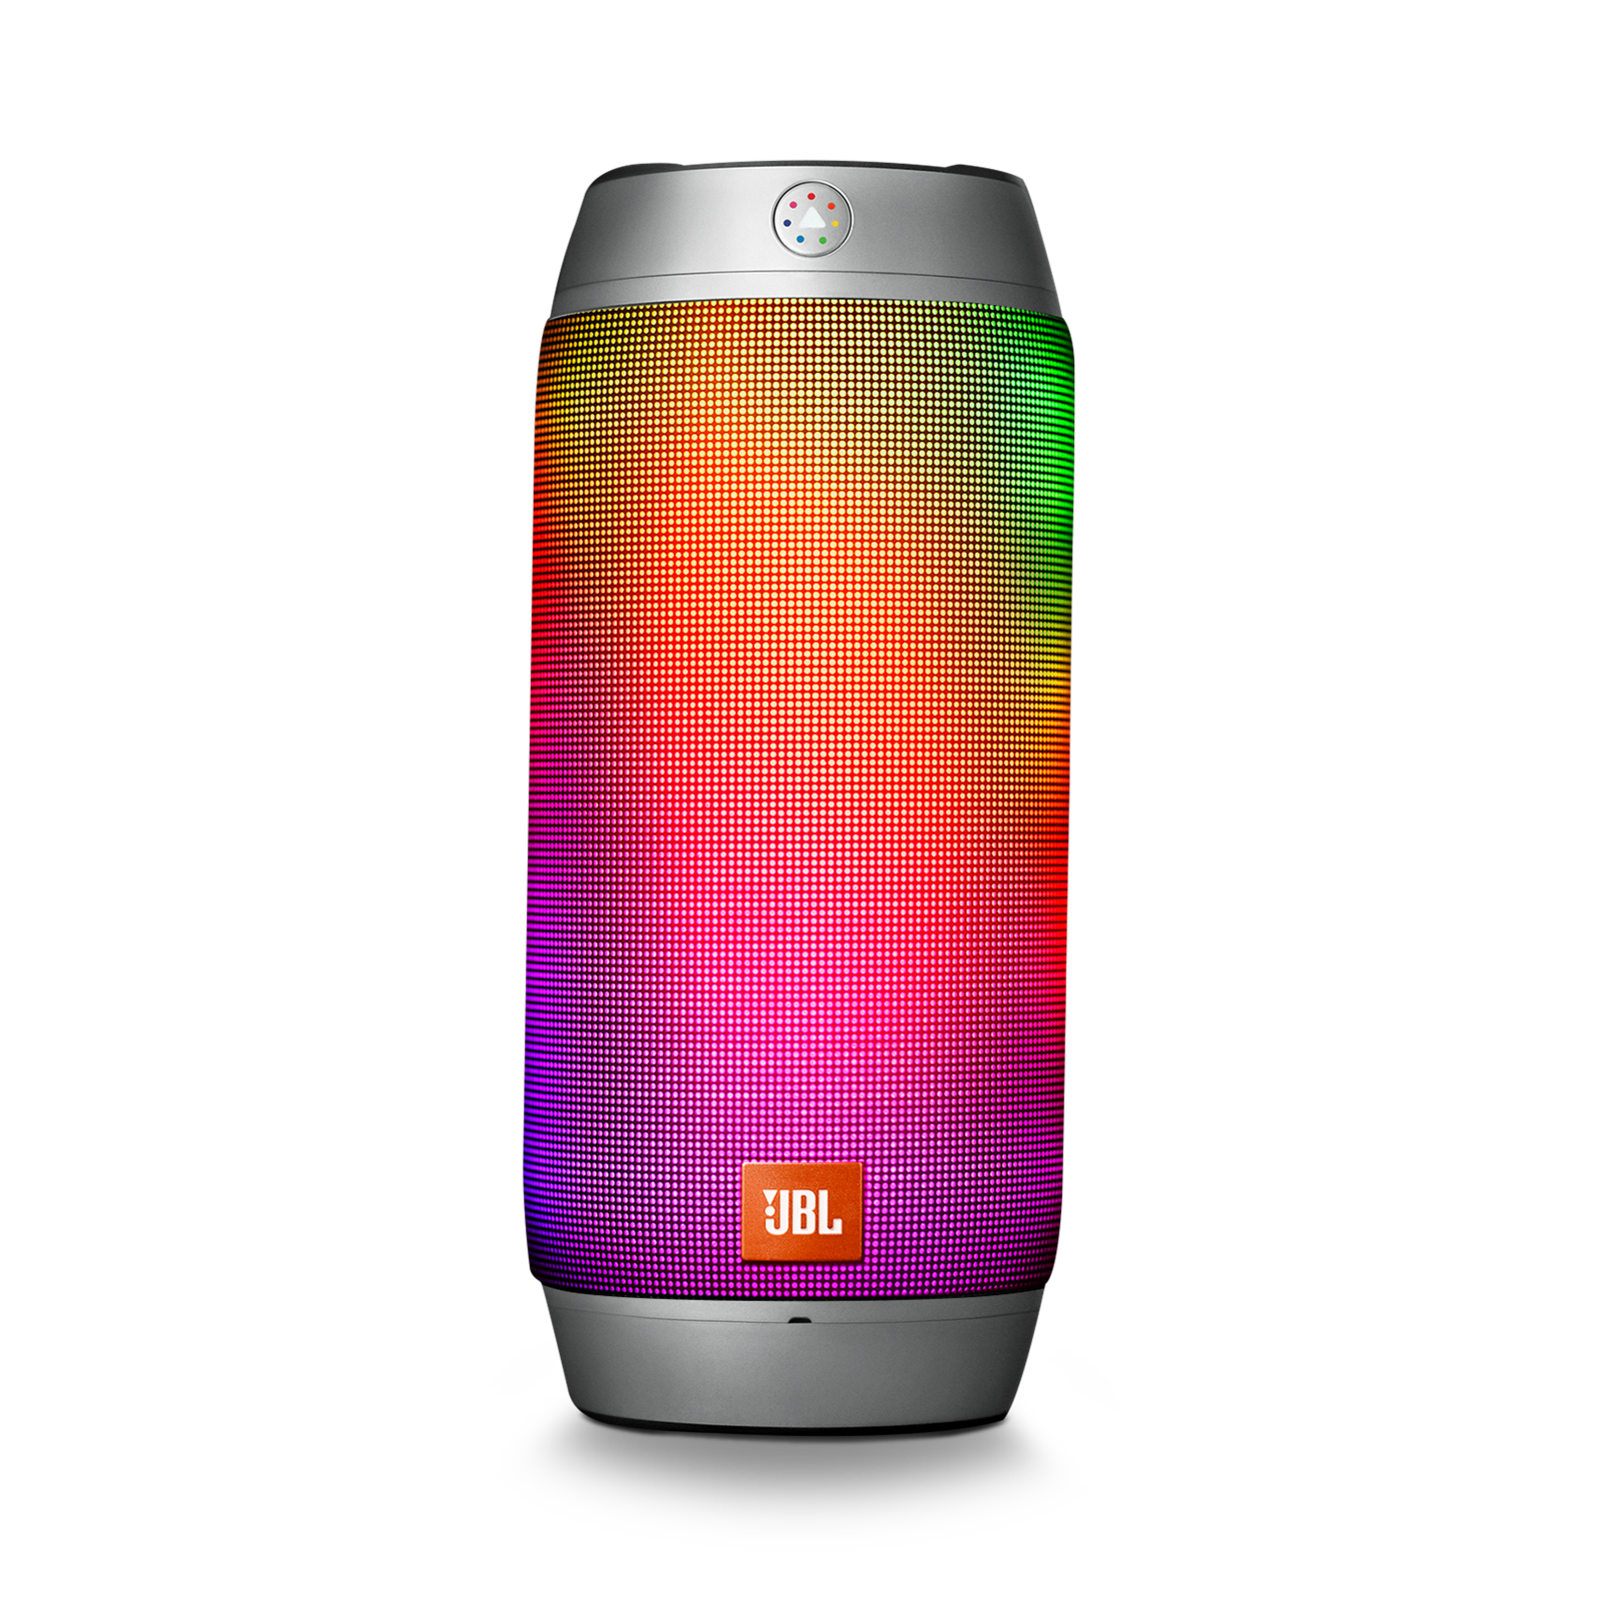 Jbl pulse 2 splashproof bluetooth speaker with light show for Housse jbl pulse 3